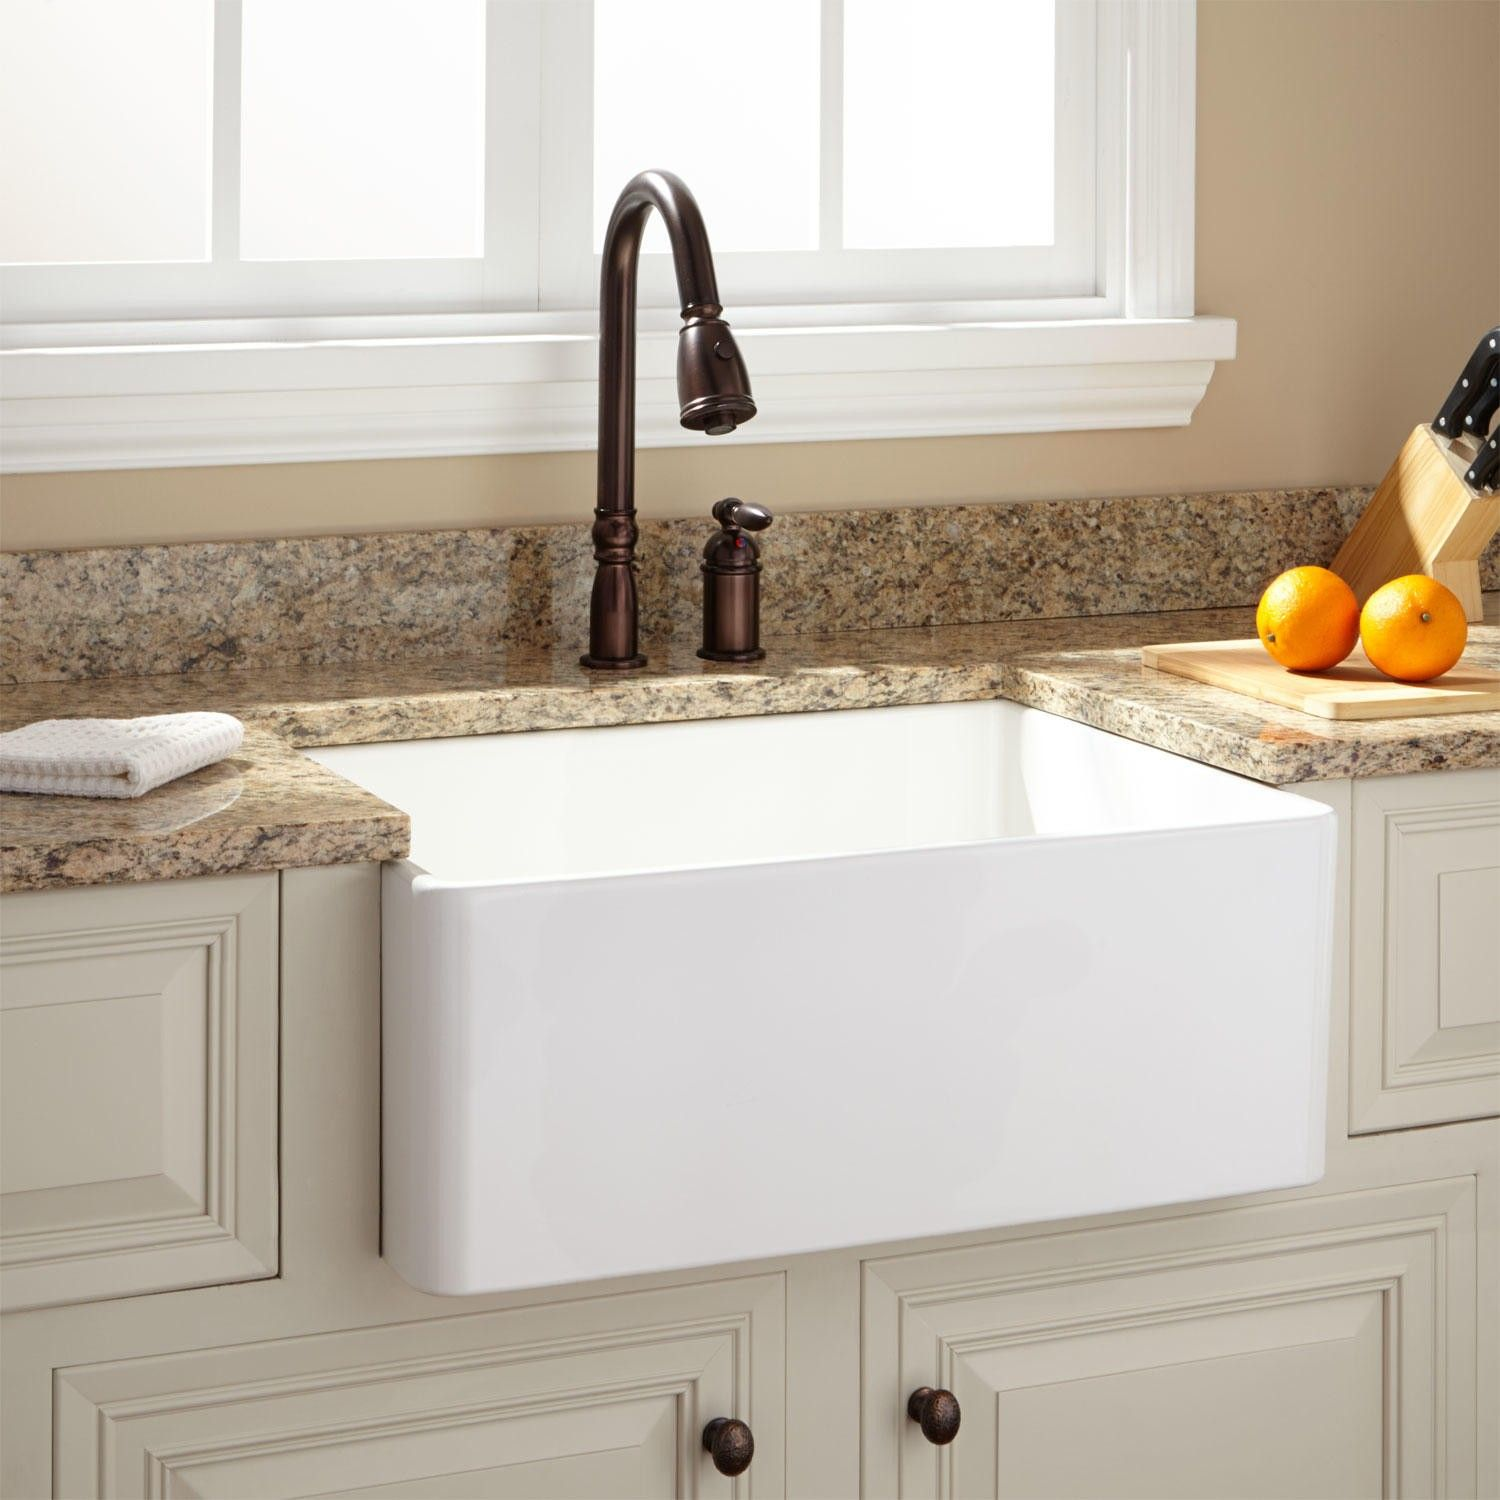 26 Inch Farmhouse Sink 26 Quot Baldwin Fireclay Farmhouse Sink Smooth Apron White